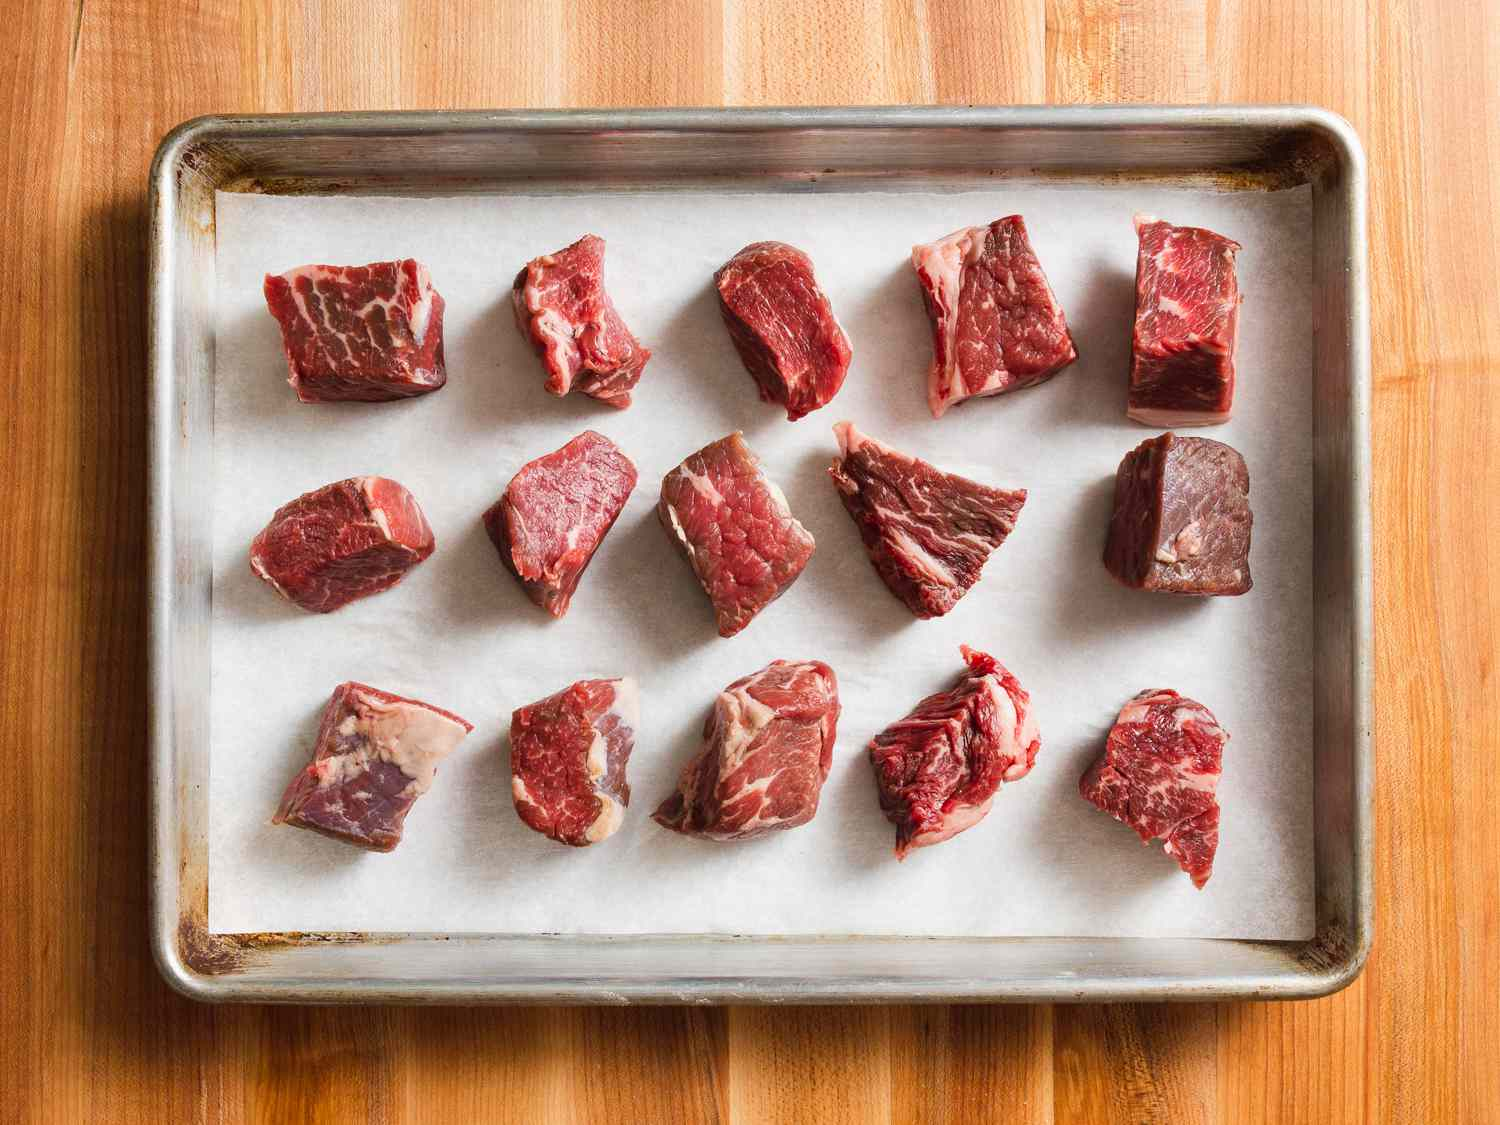 chunks of meat on a parchment-lined baking sheet